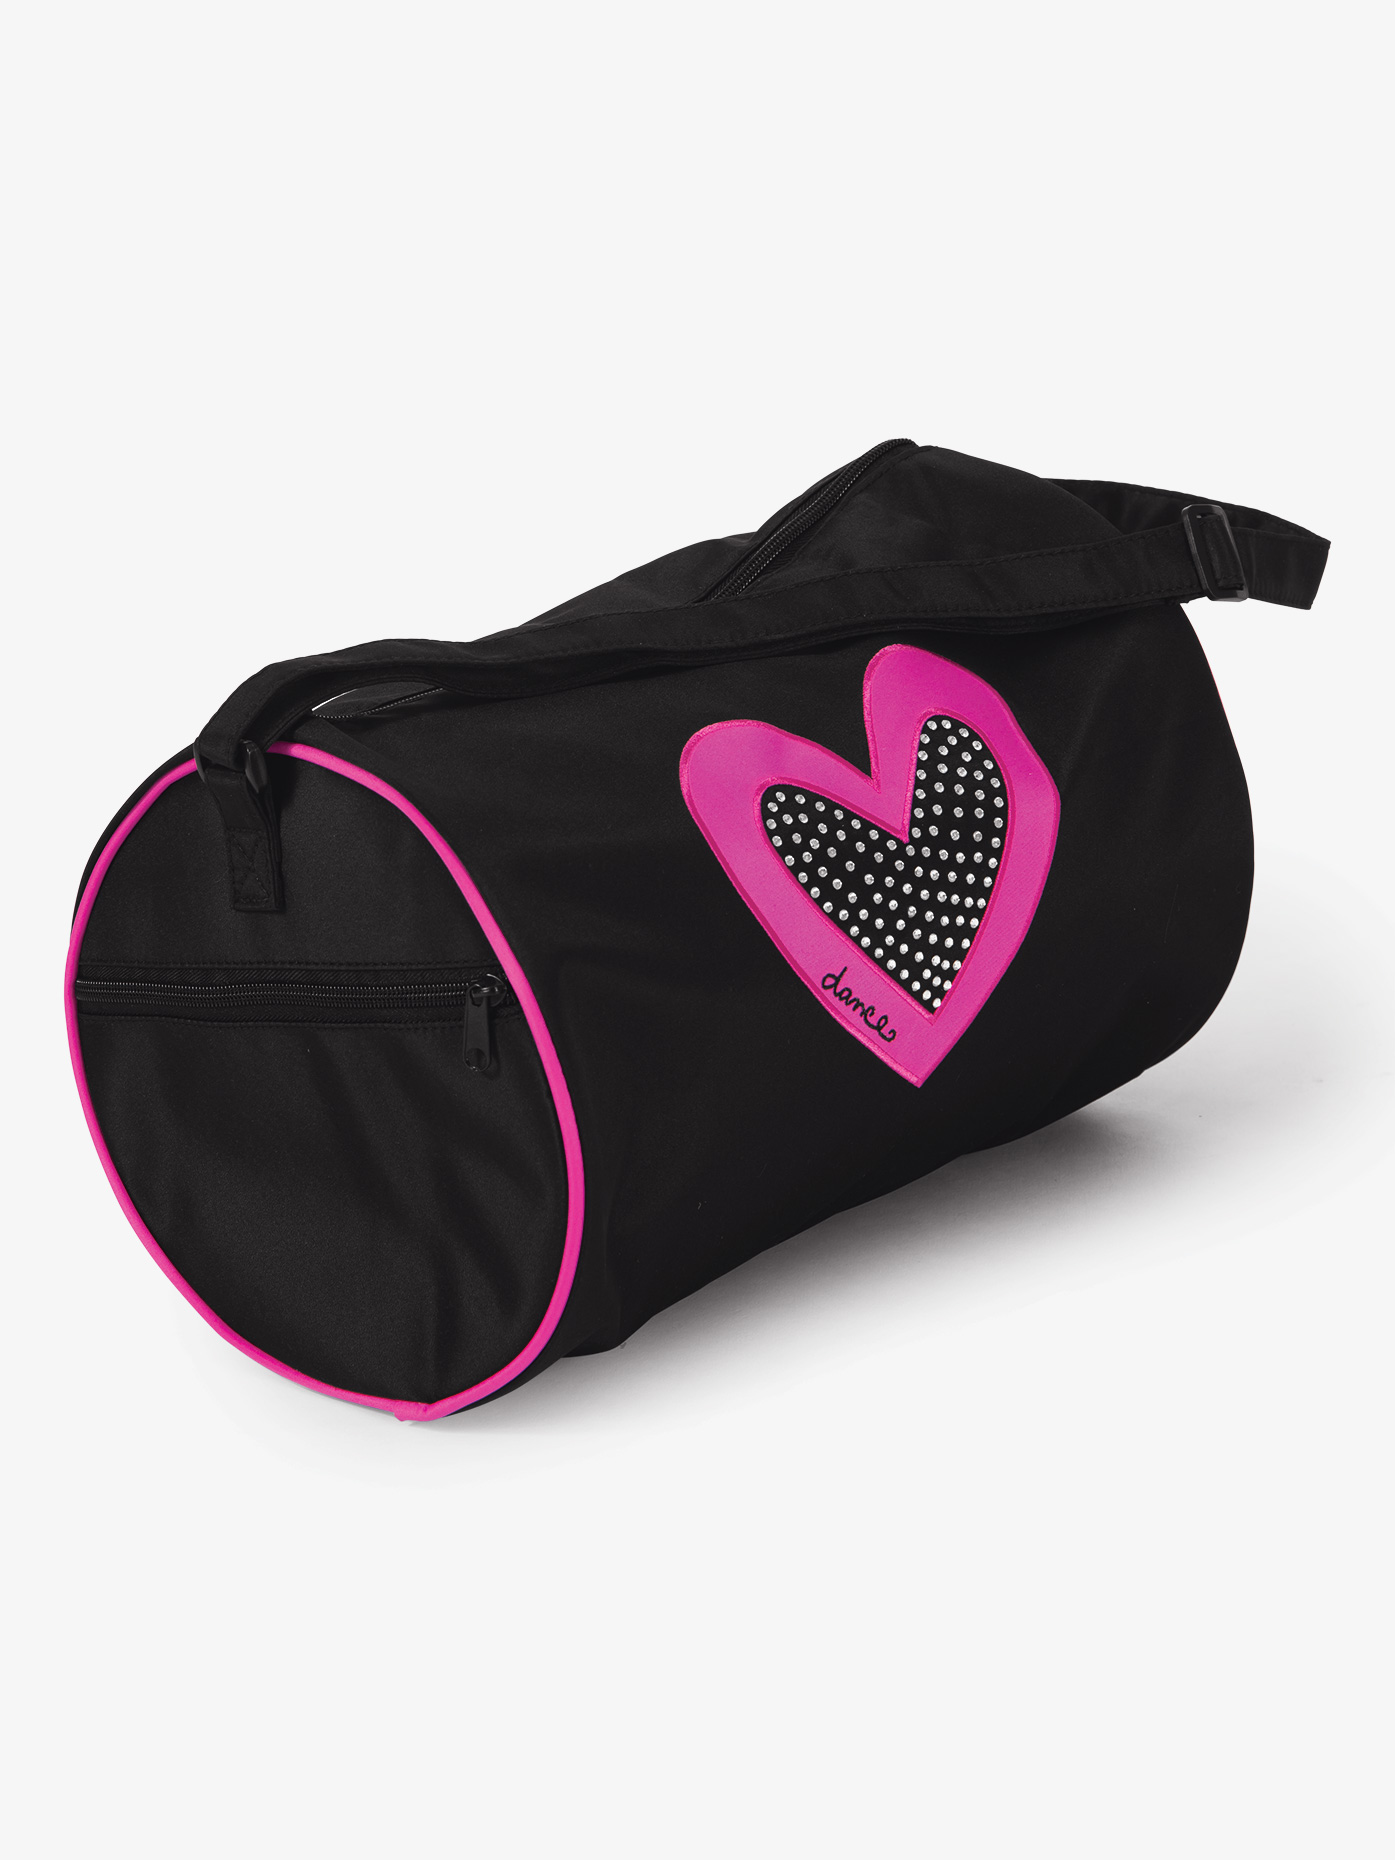 DansBagz Dancer's Heart Duffle Bag B975